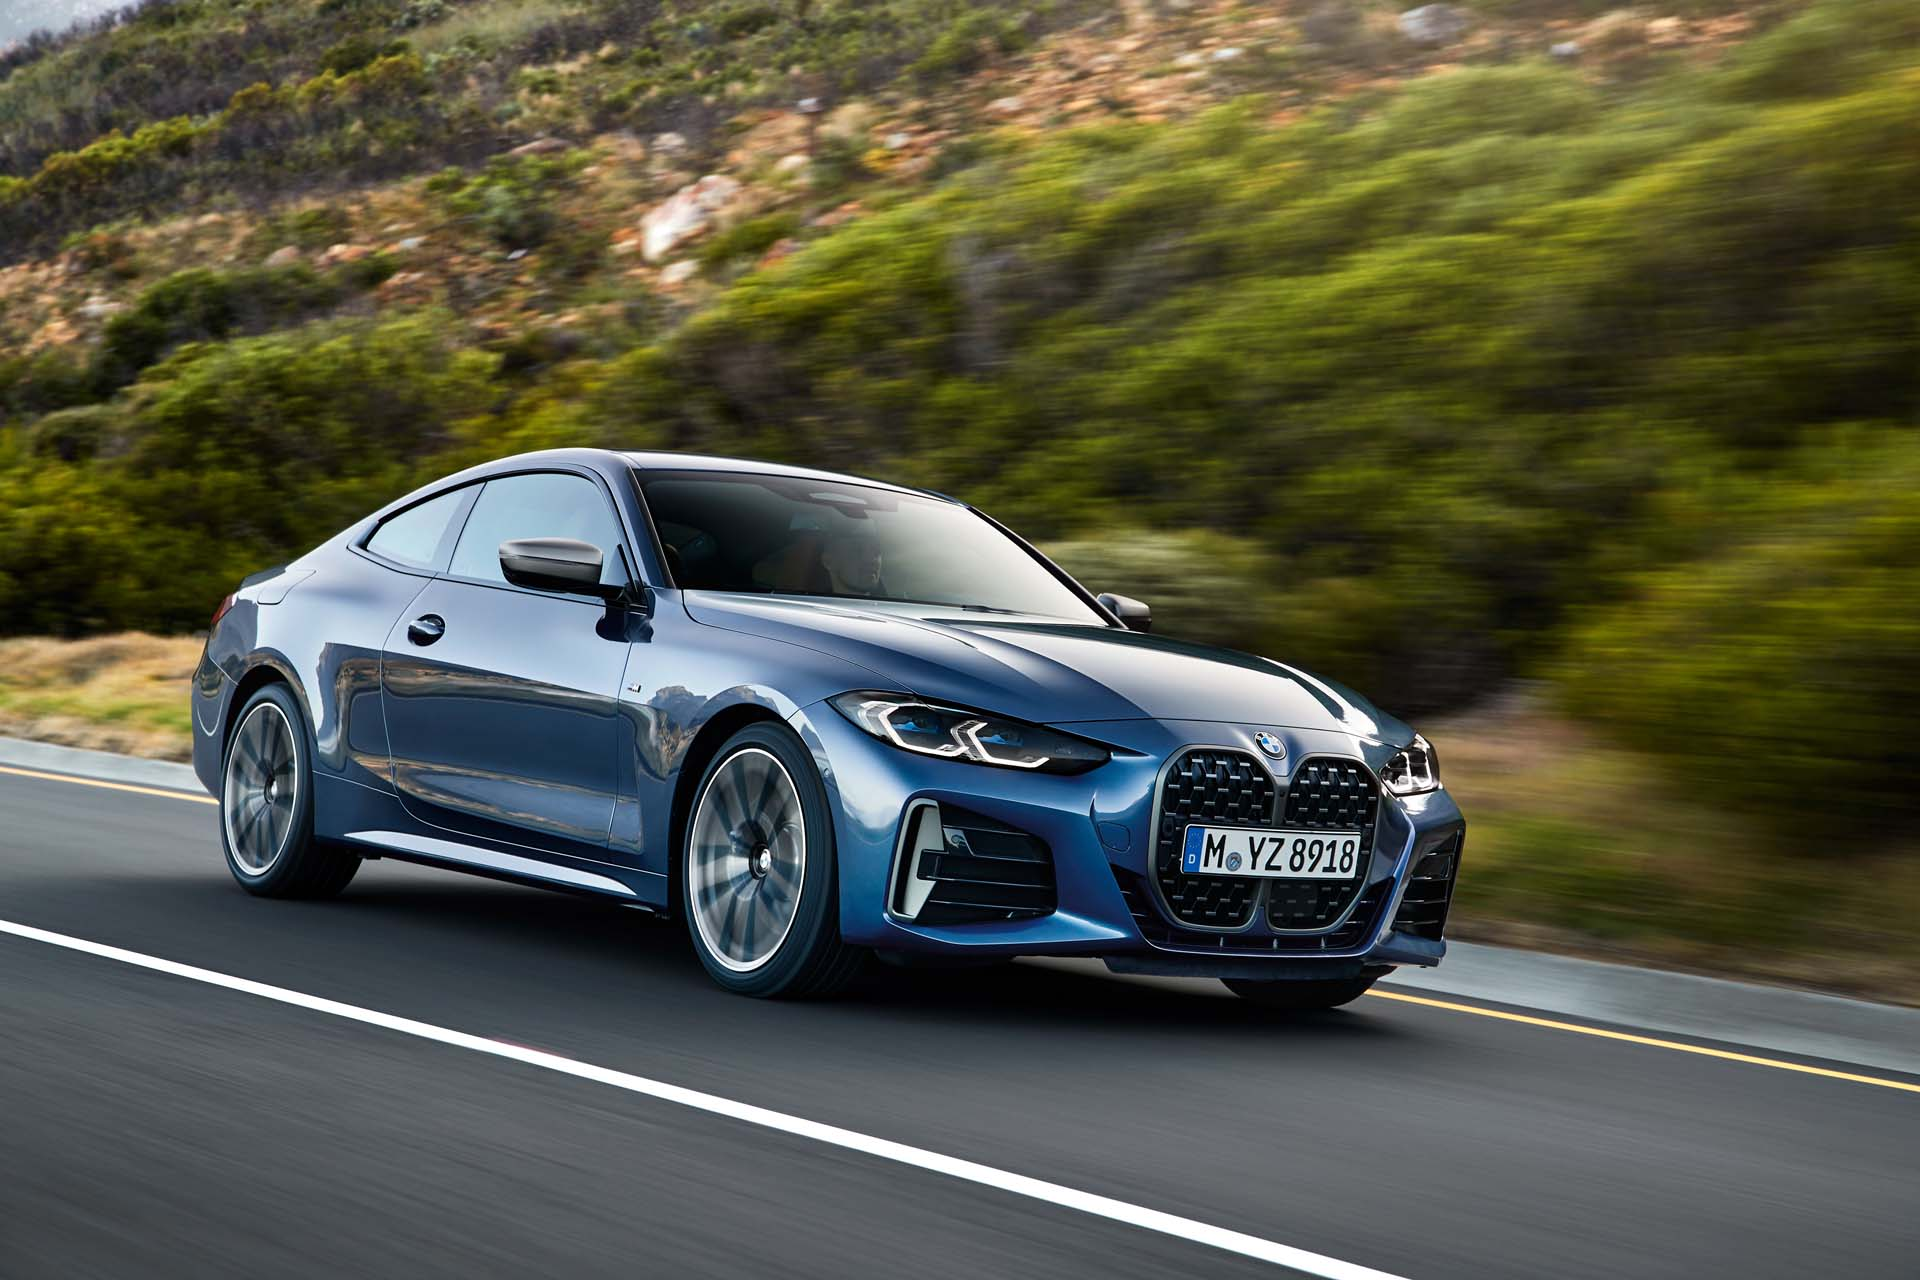 2021 bmw 4-series preview: popular coupe takes on bold new